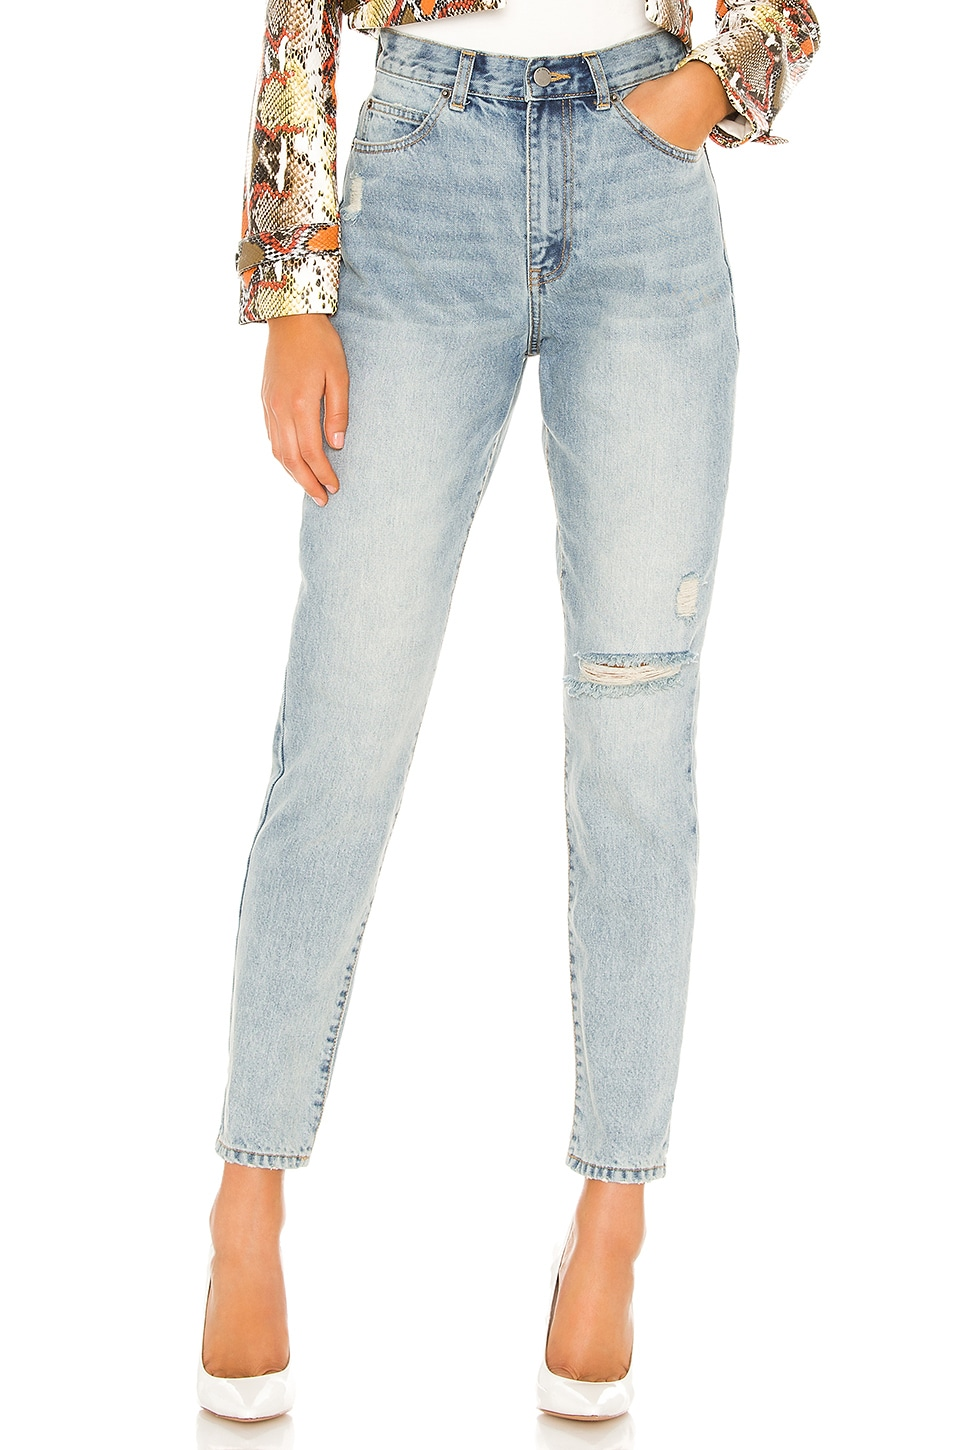 Dr. Denim Nora Straight in Downtown Blue Ripped